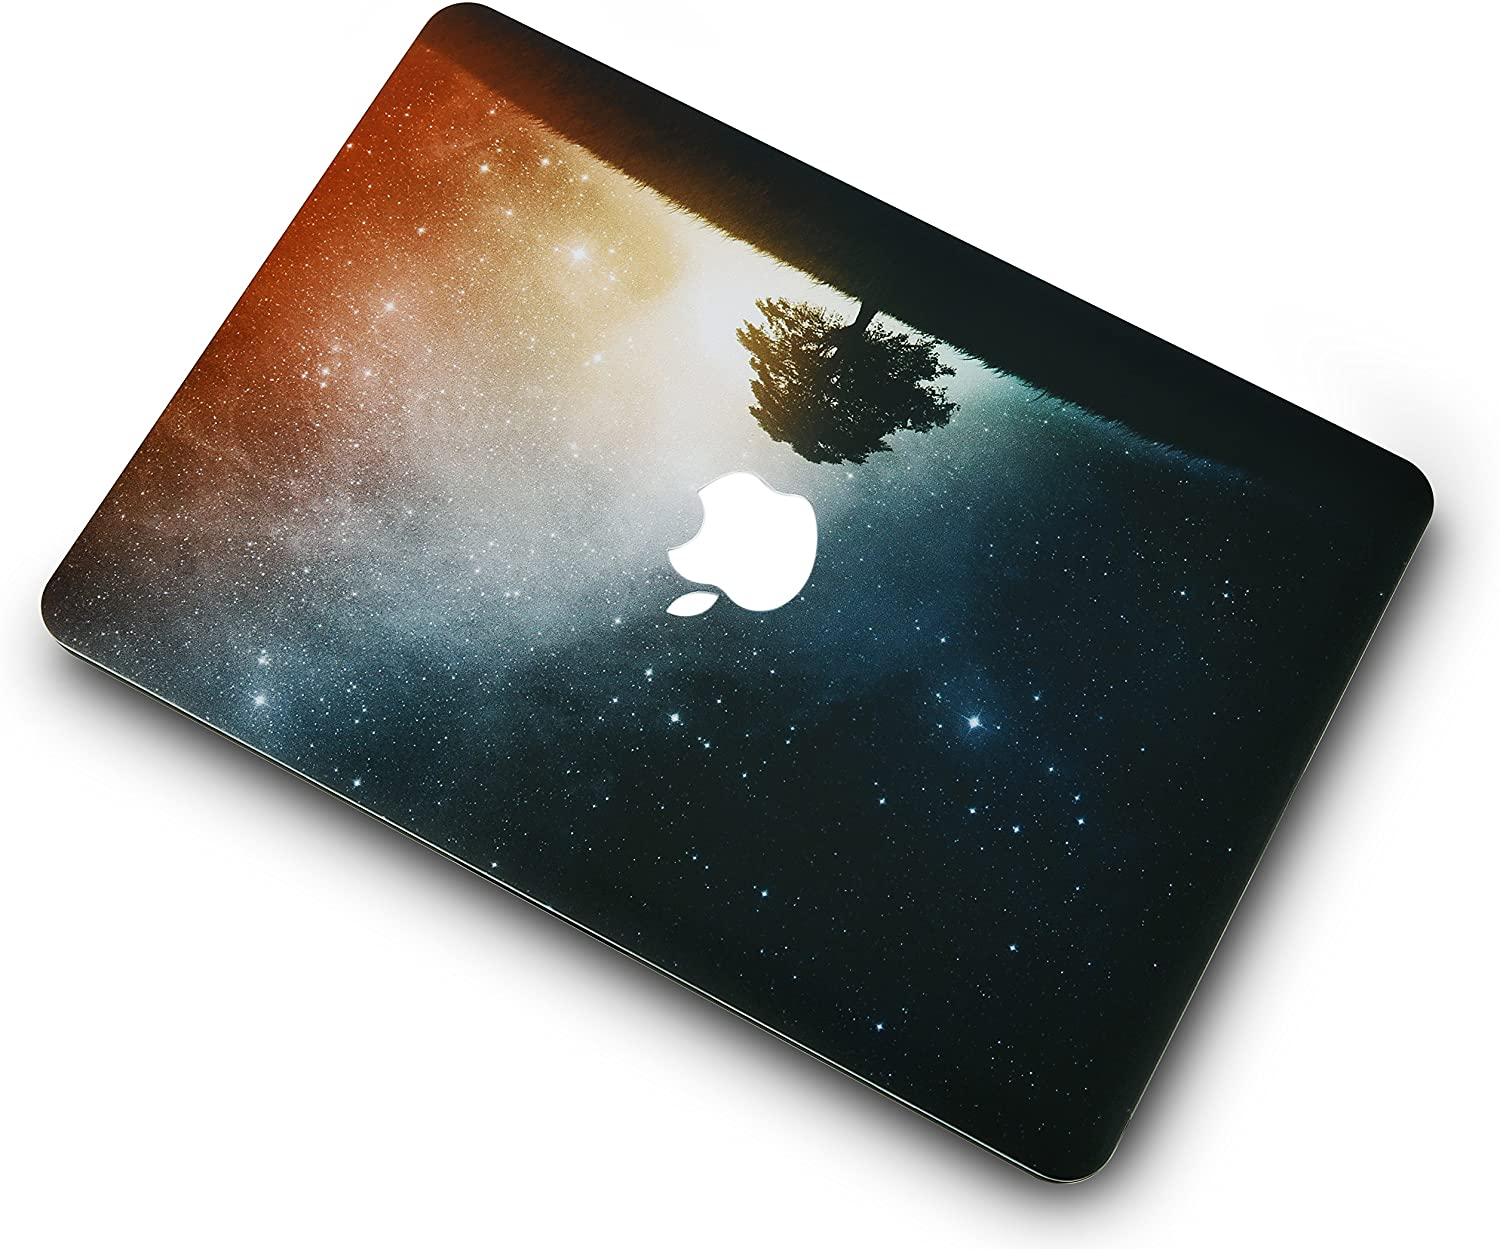 Plastic Protective Case for Macbook